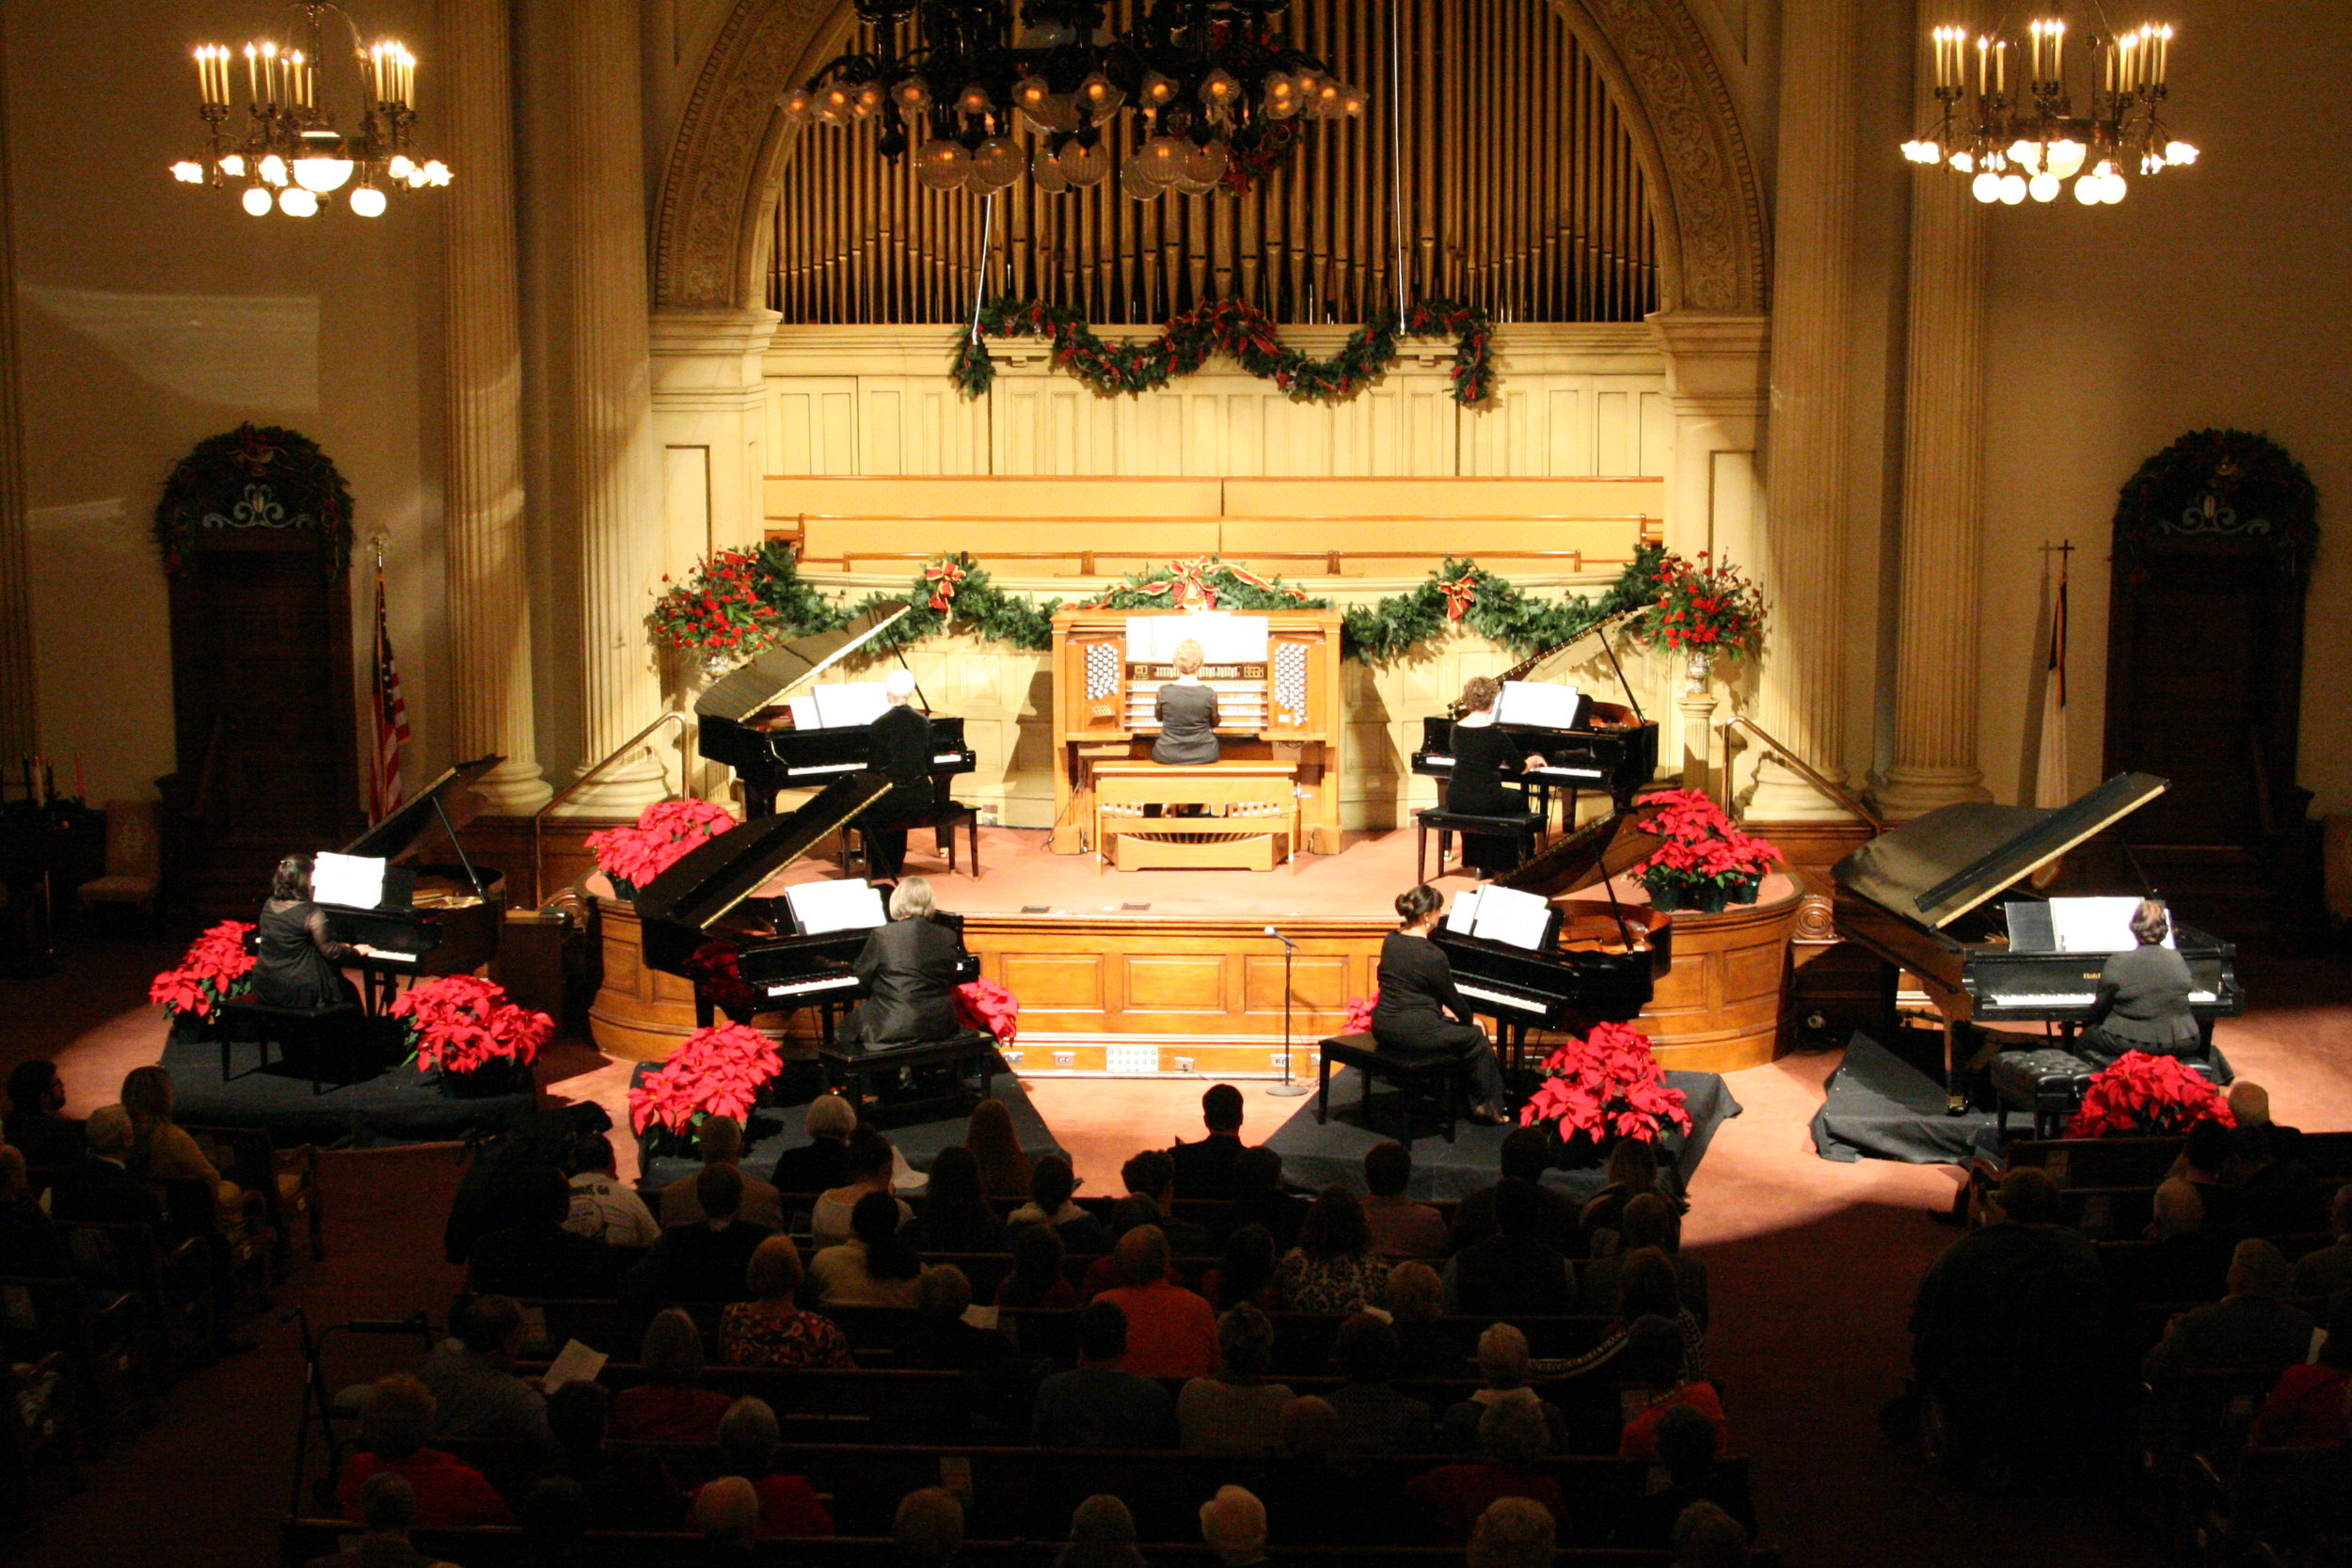 Keyboards at Christmas features multiple organs and pianos each year.